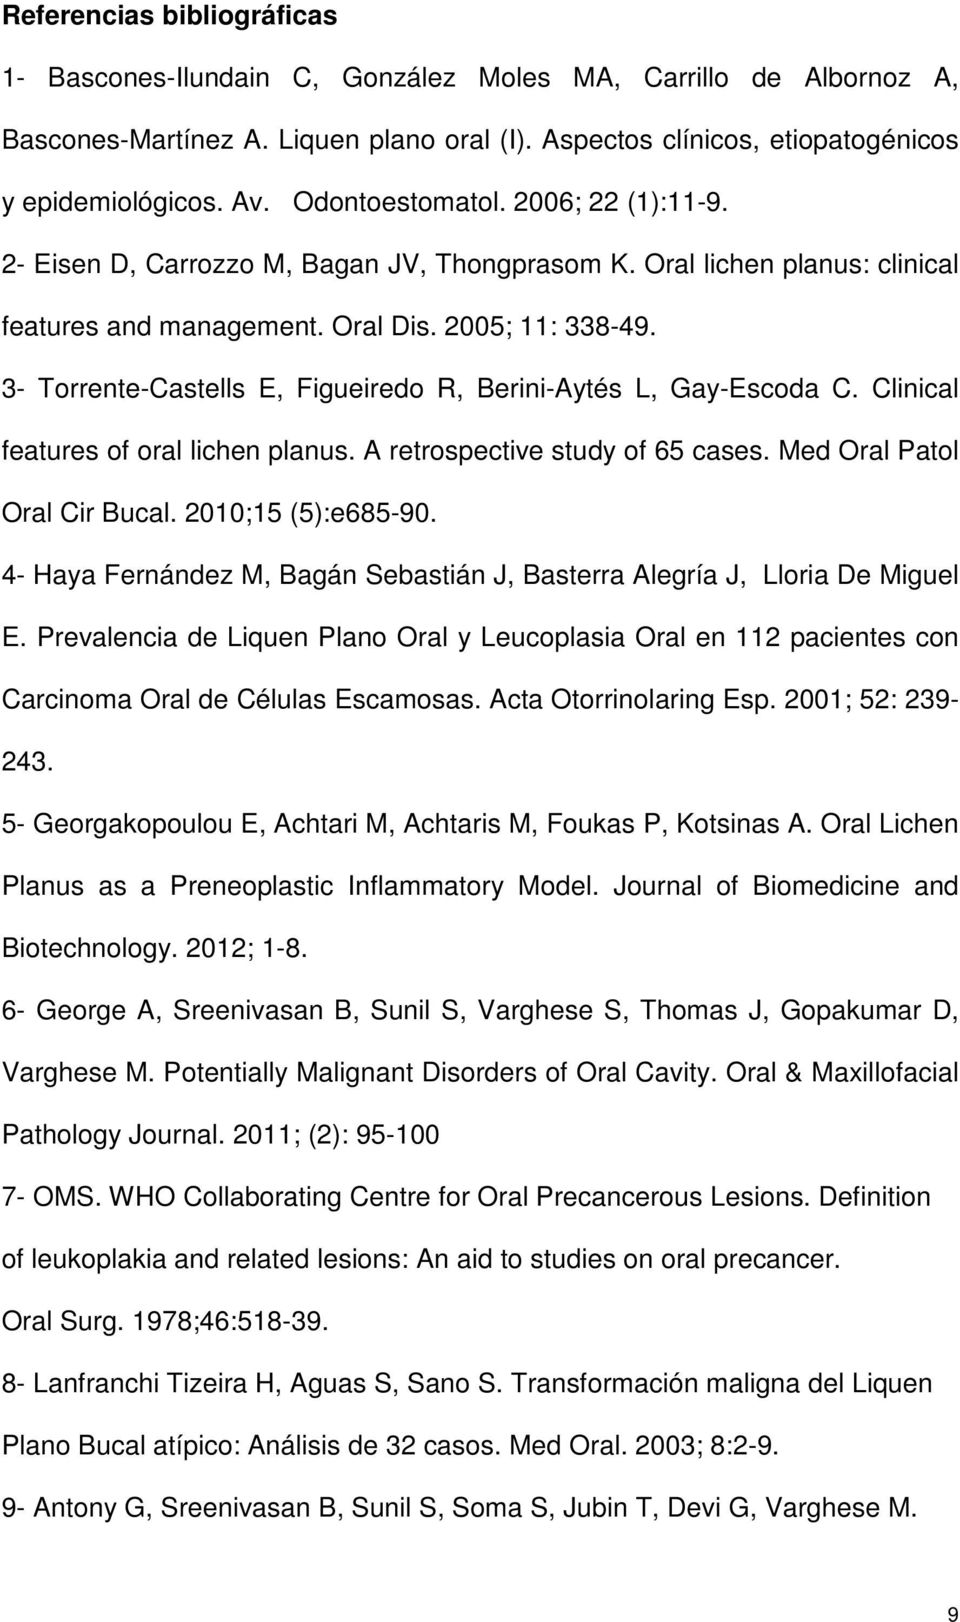 3- Torrente-Castells E, Figueiredo R, Berini-Aytés L, Gay-Escoda C. Clinical features of oral lichen planus. A retrospective study of 65 cases. Med Oral Patol Oral Cir Bucal. 2010;15 (5):e685-90.